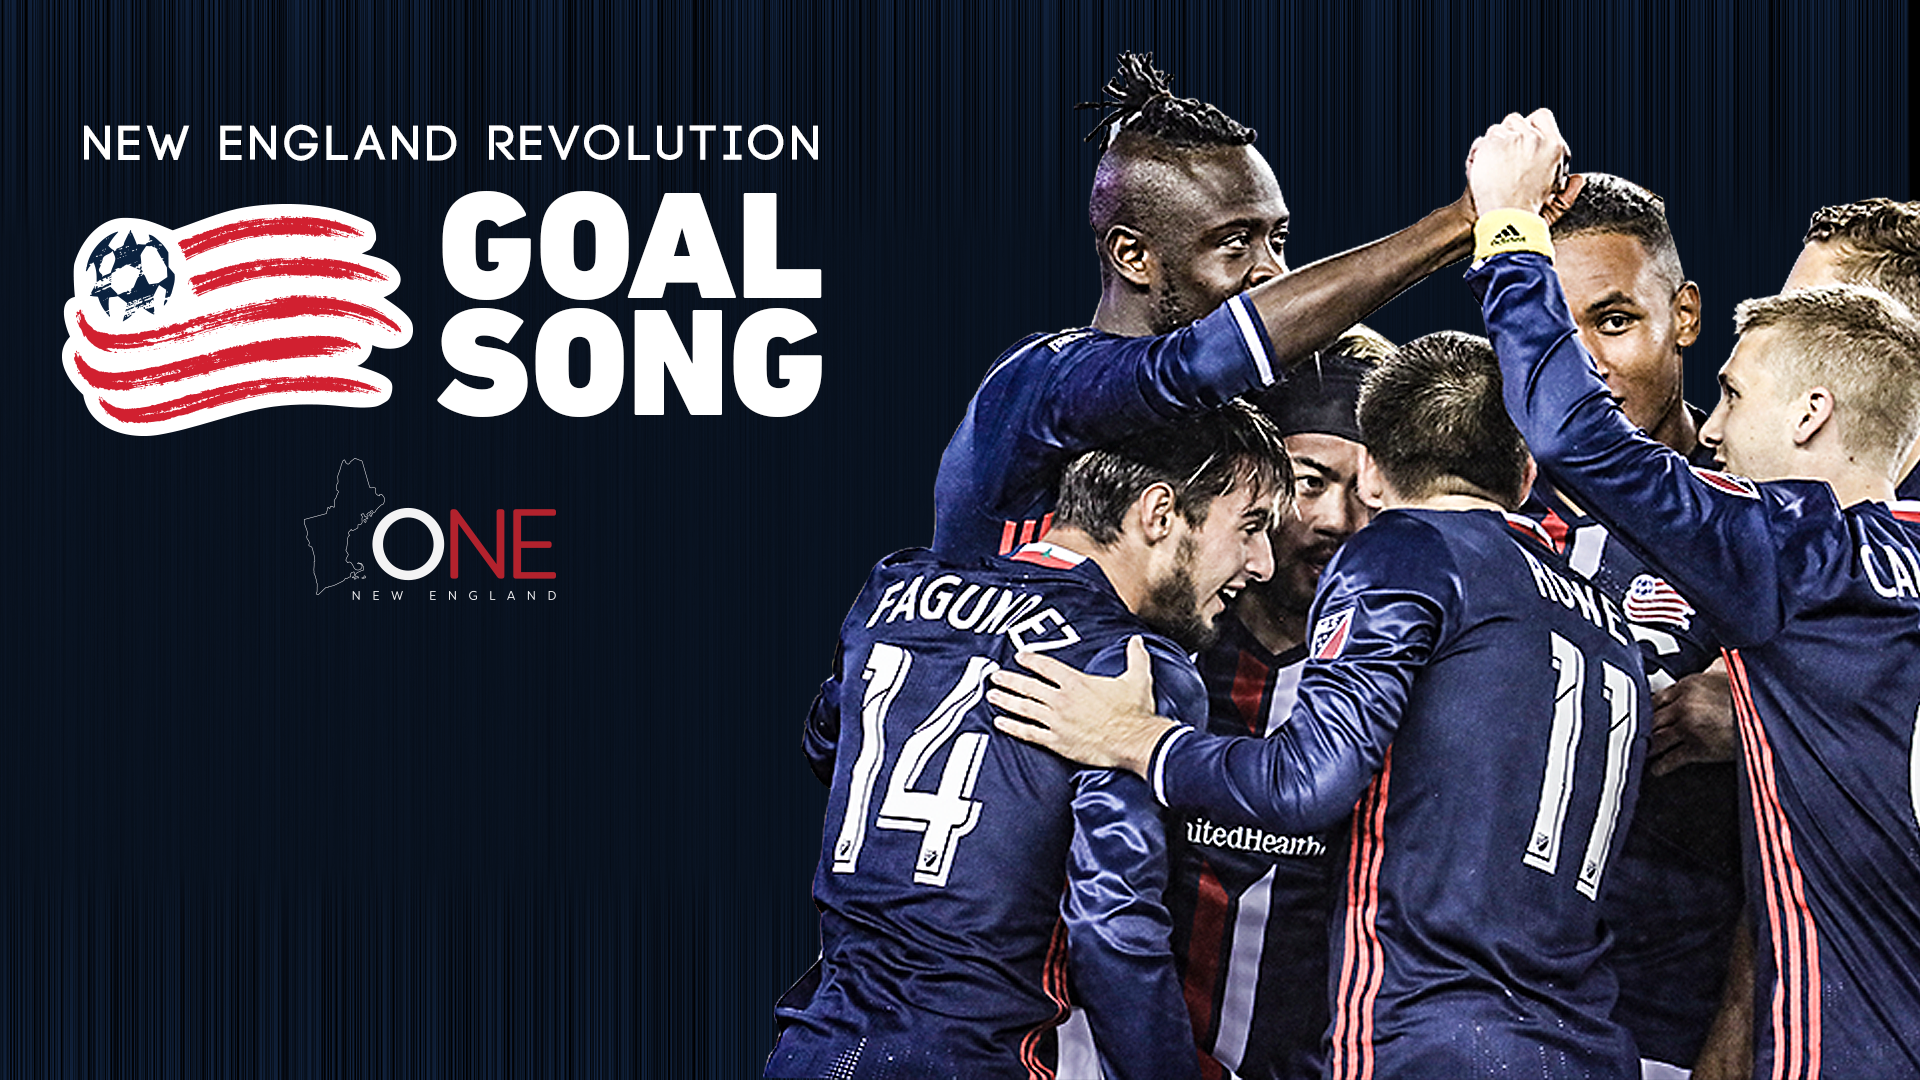 New England Revolution mls soccer sports wallpaper 1920x1080 1920x1080